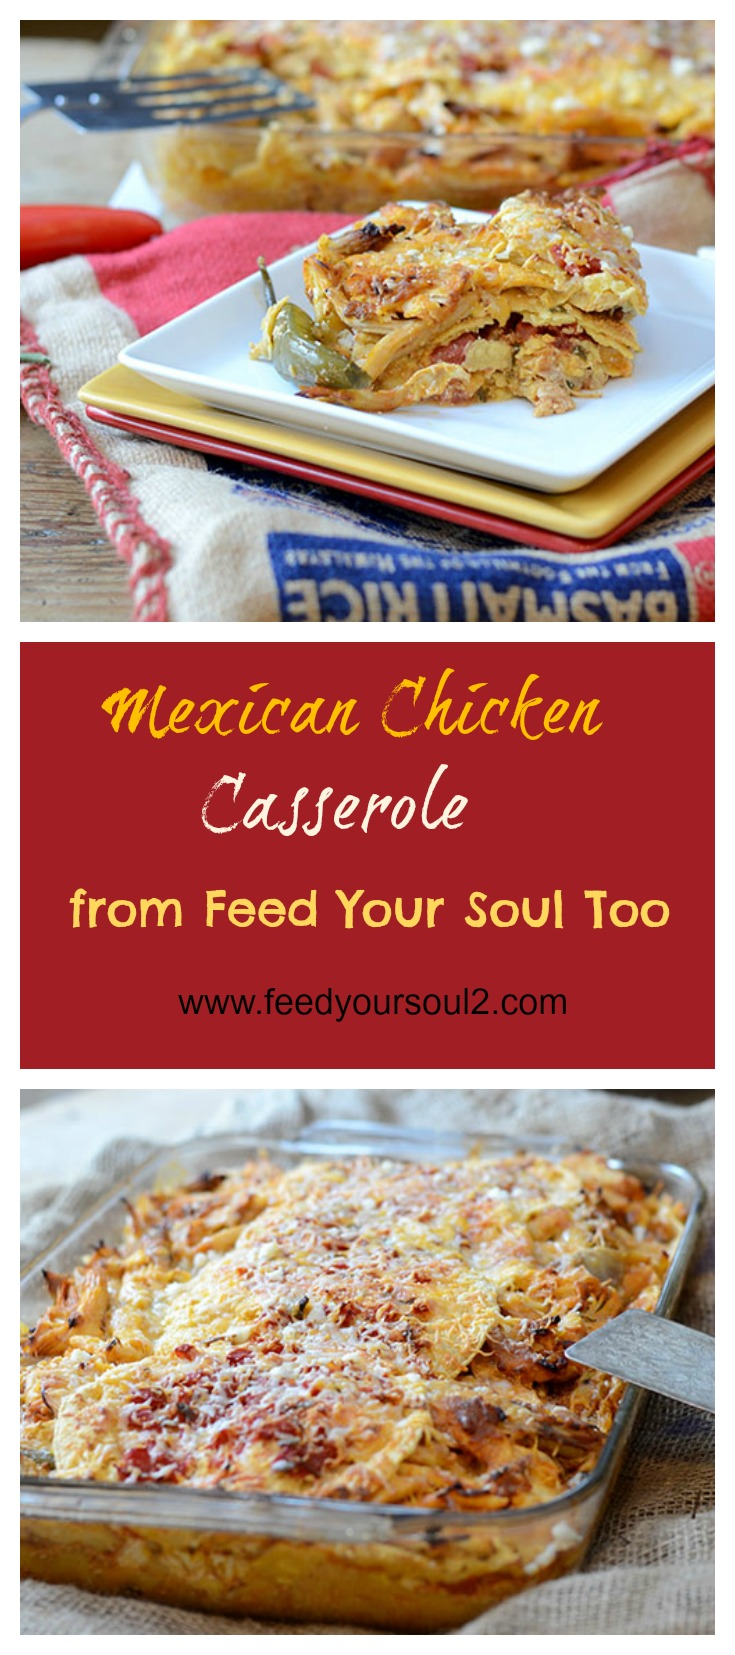 Mexican Chicken Casserole #mexicanfood #chicken #fusion | feedyoursoul2.com